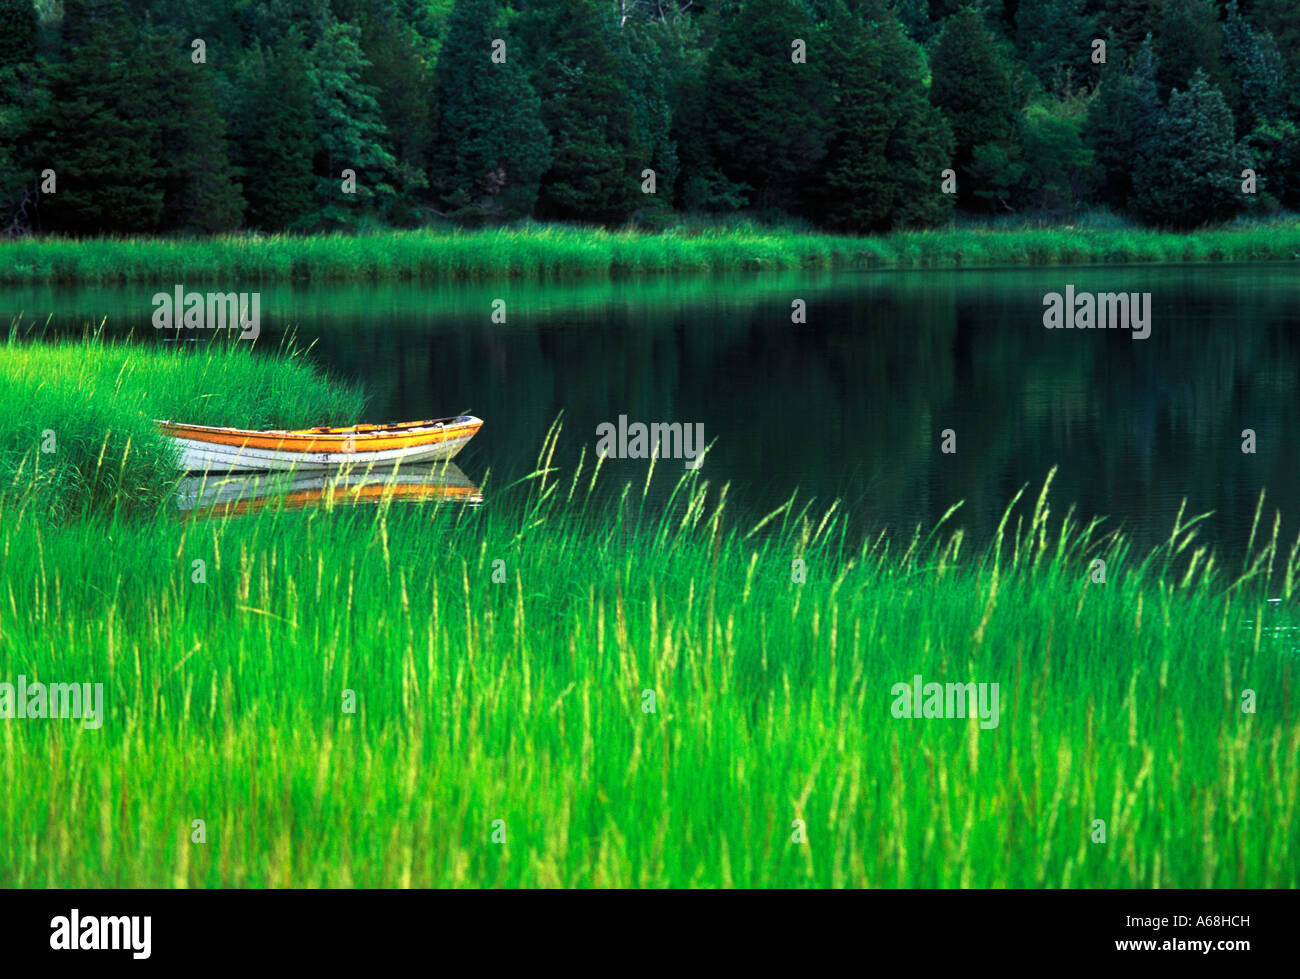 Row boat tied up in marsh grass Mill Pond, Cape Cod - Stock Image